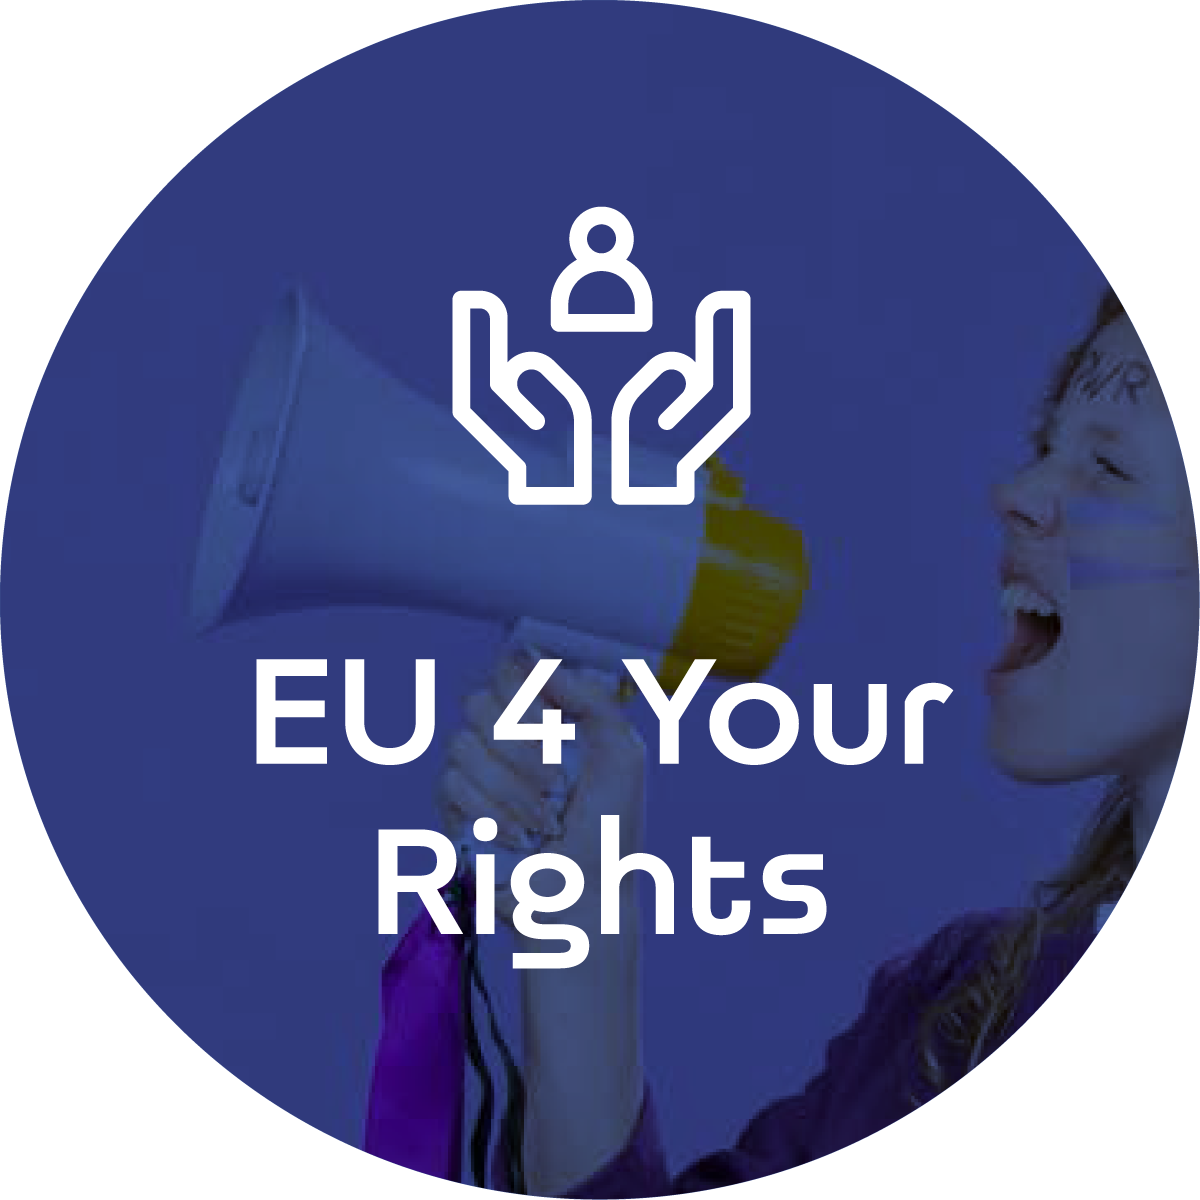 EU 4 Your Rights